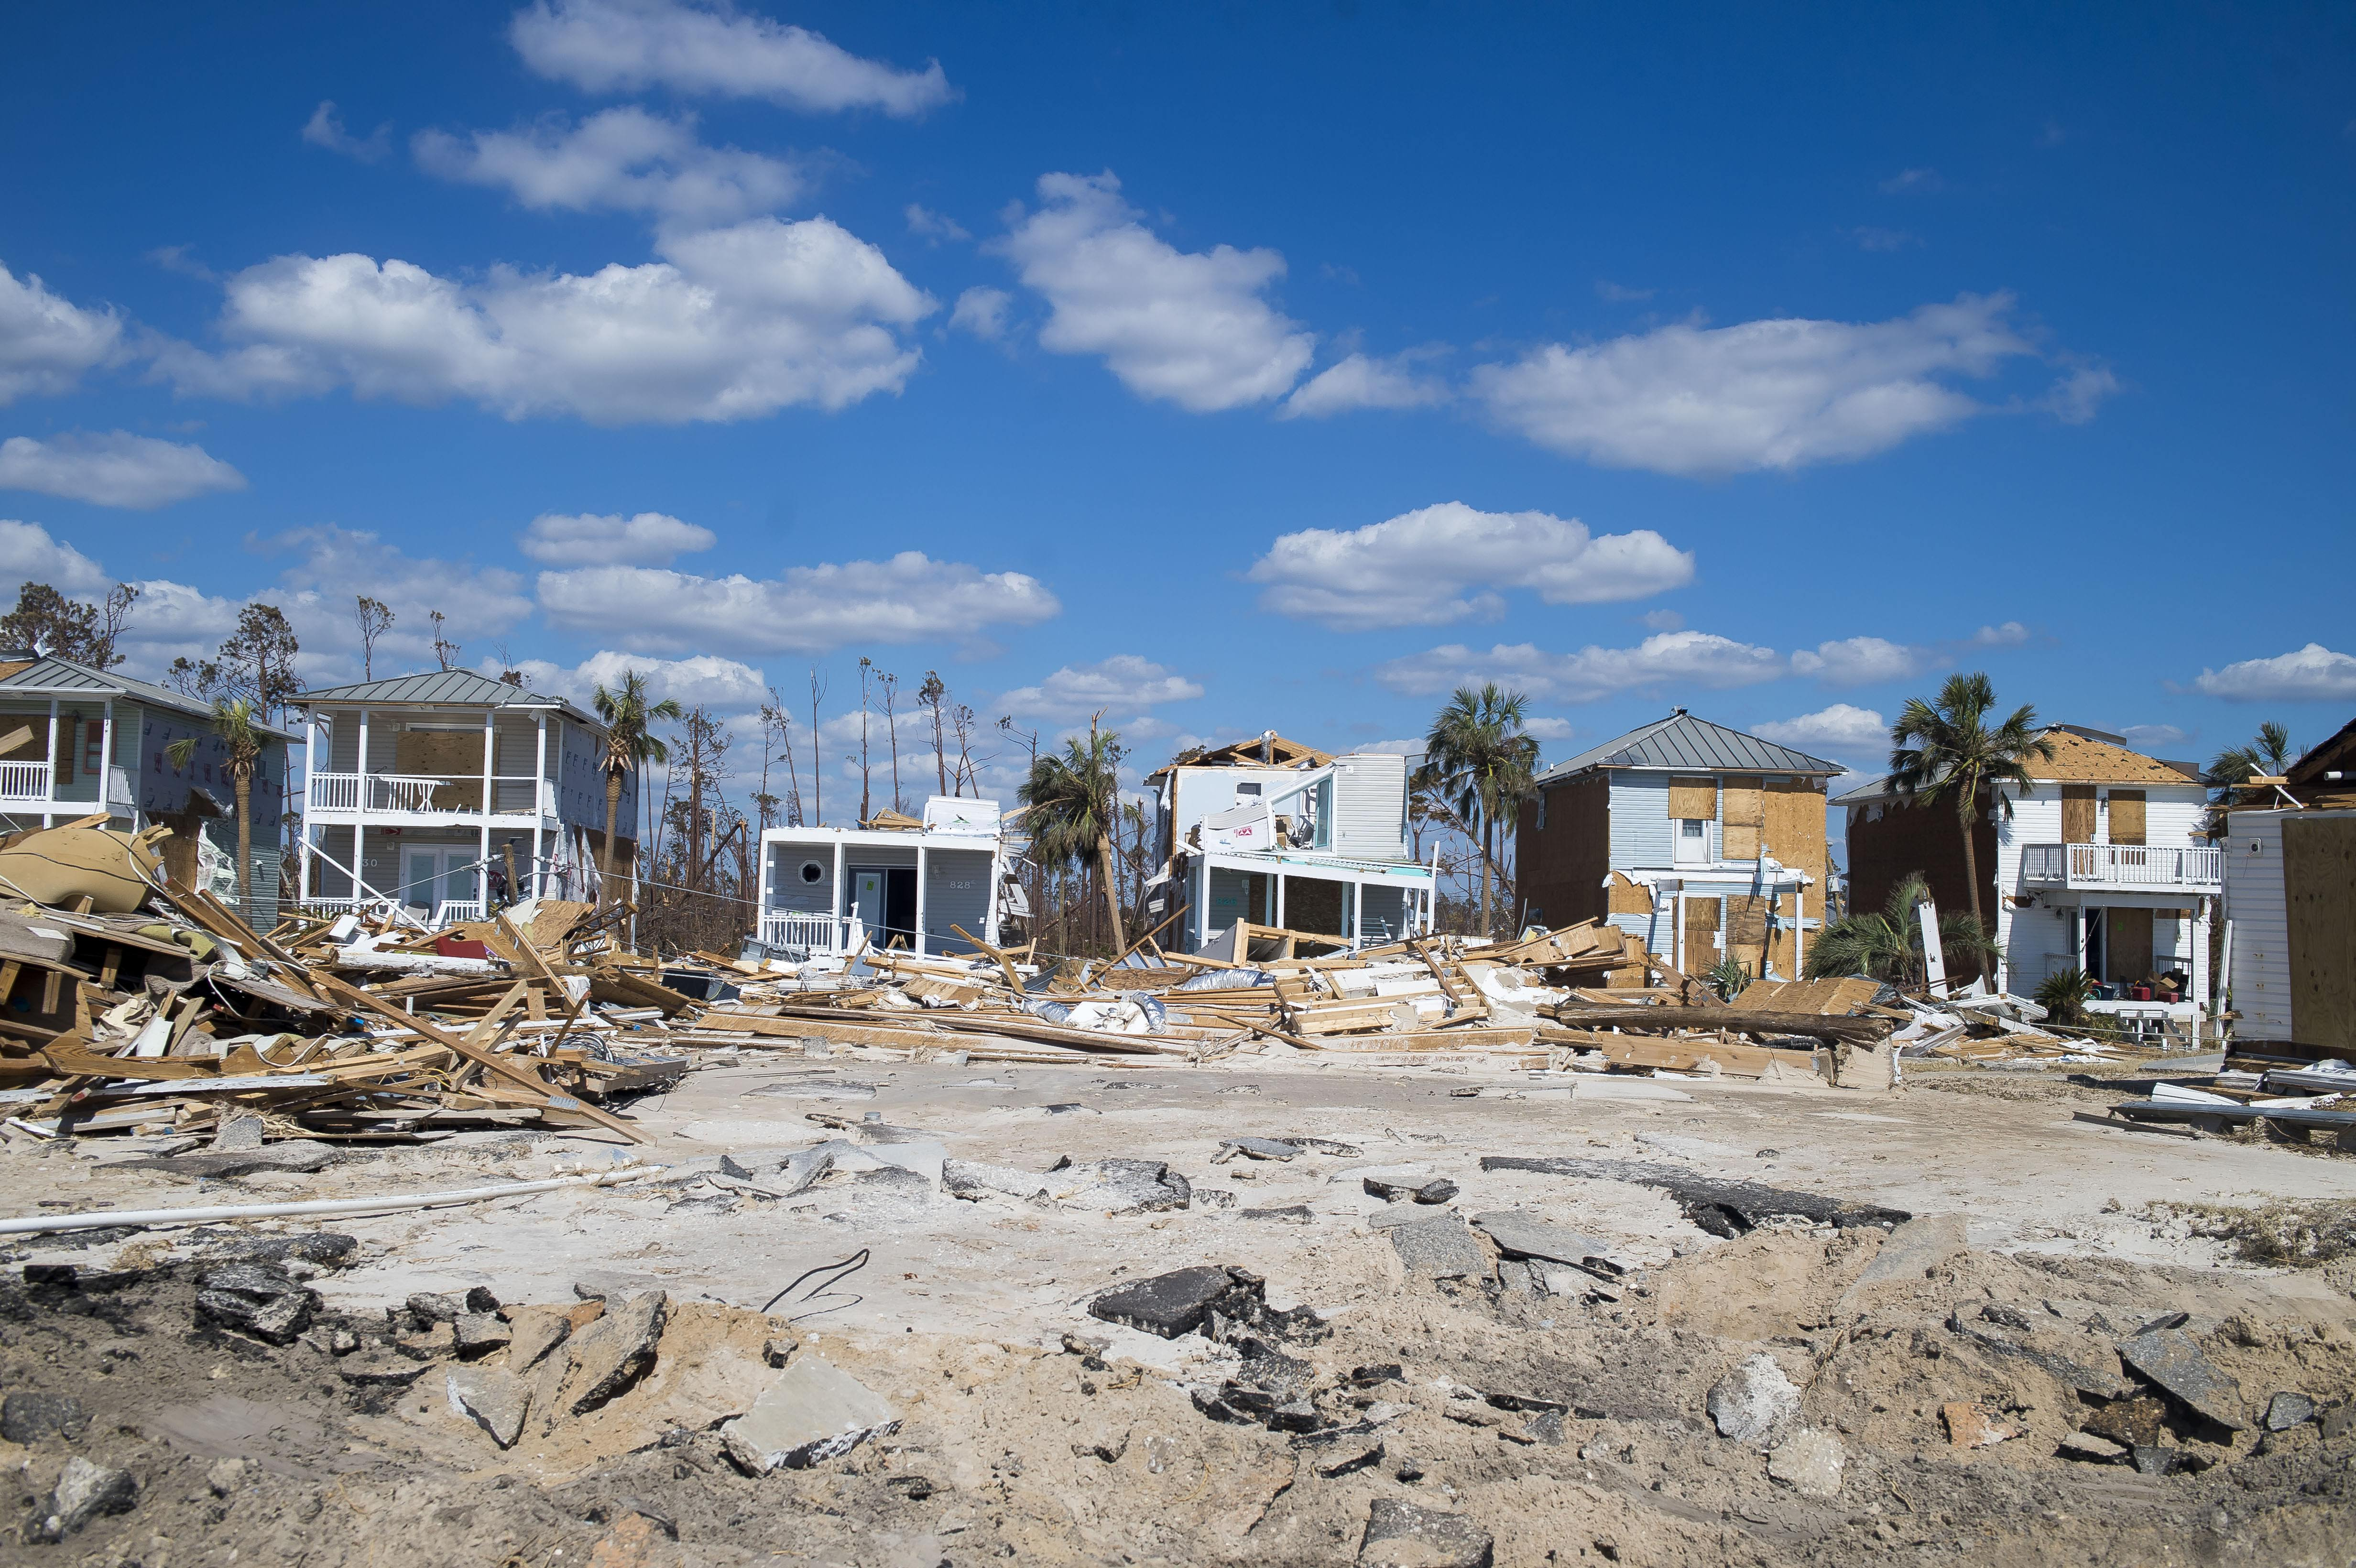 Mexico Beach, Florida, was demolished by Hurricane Michael's impact in the Florida Panhandle. (Photo by Zack Wittman for Direct Relief)